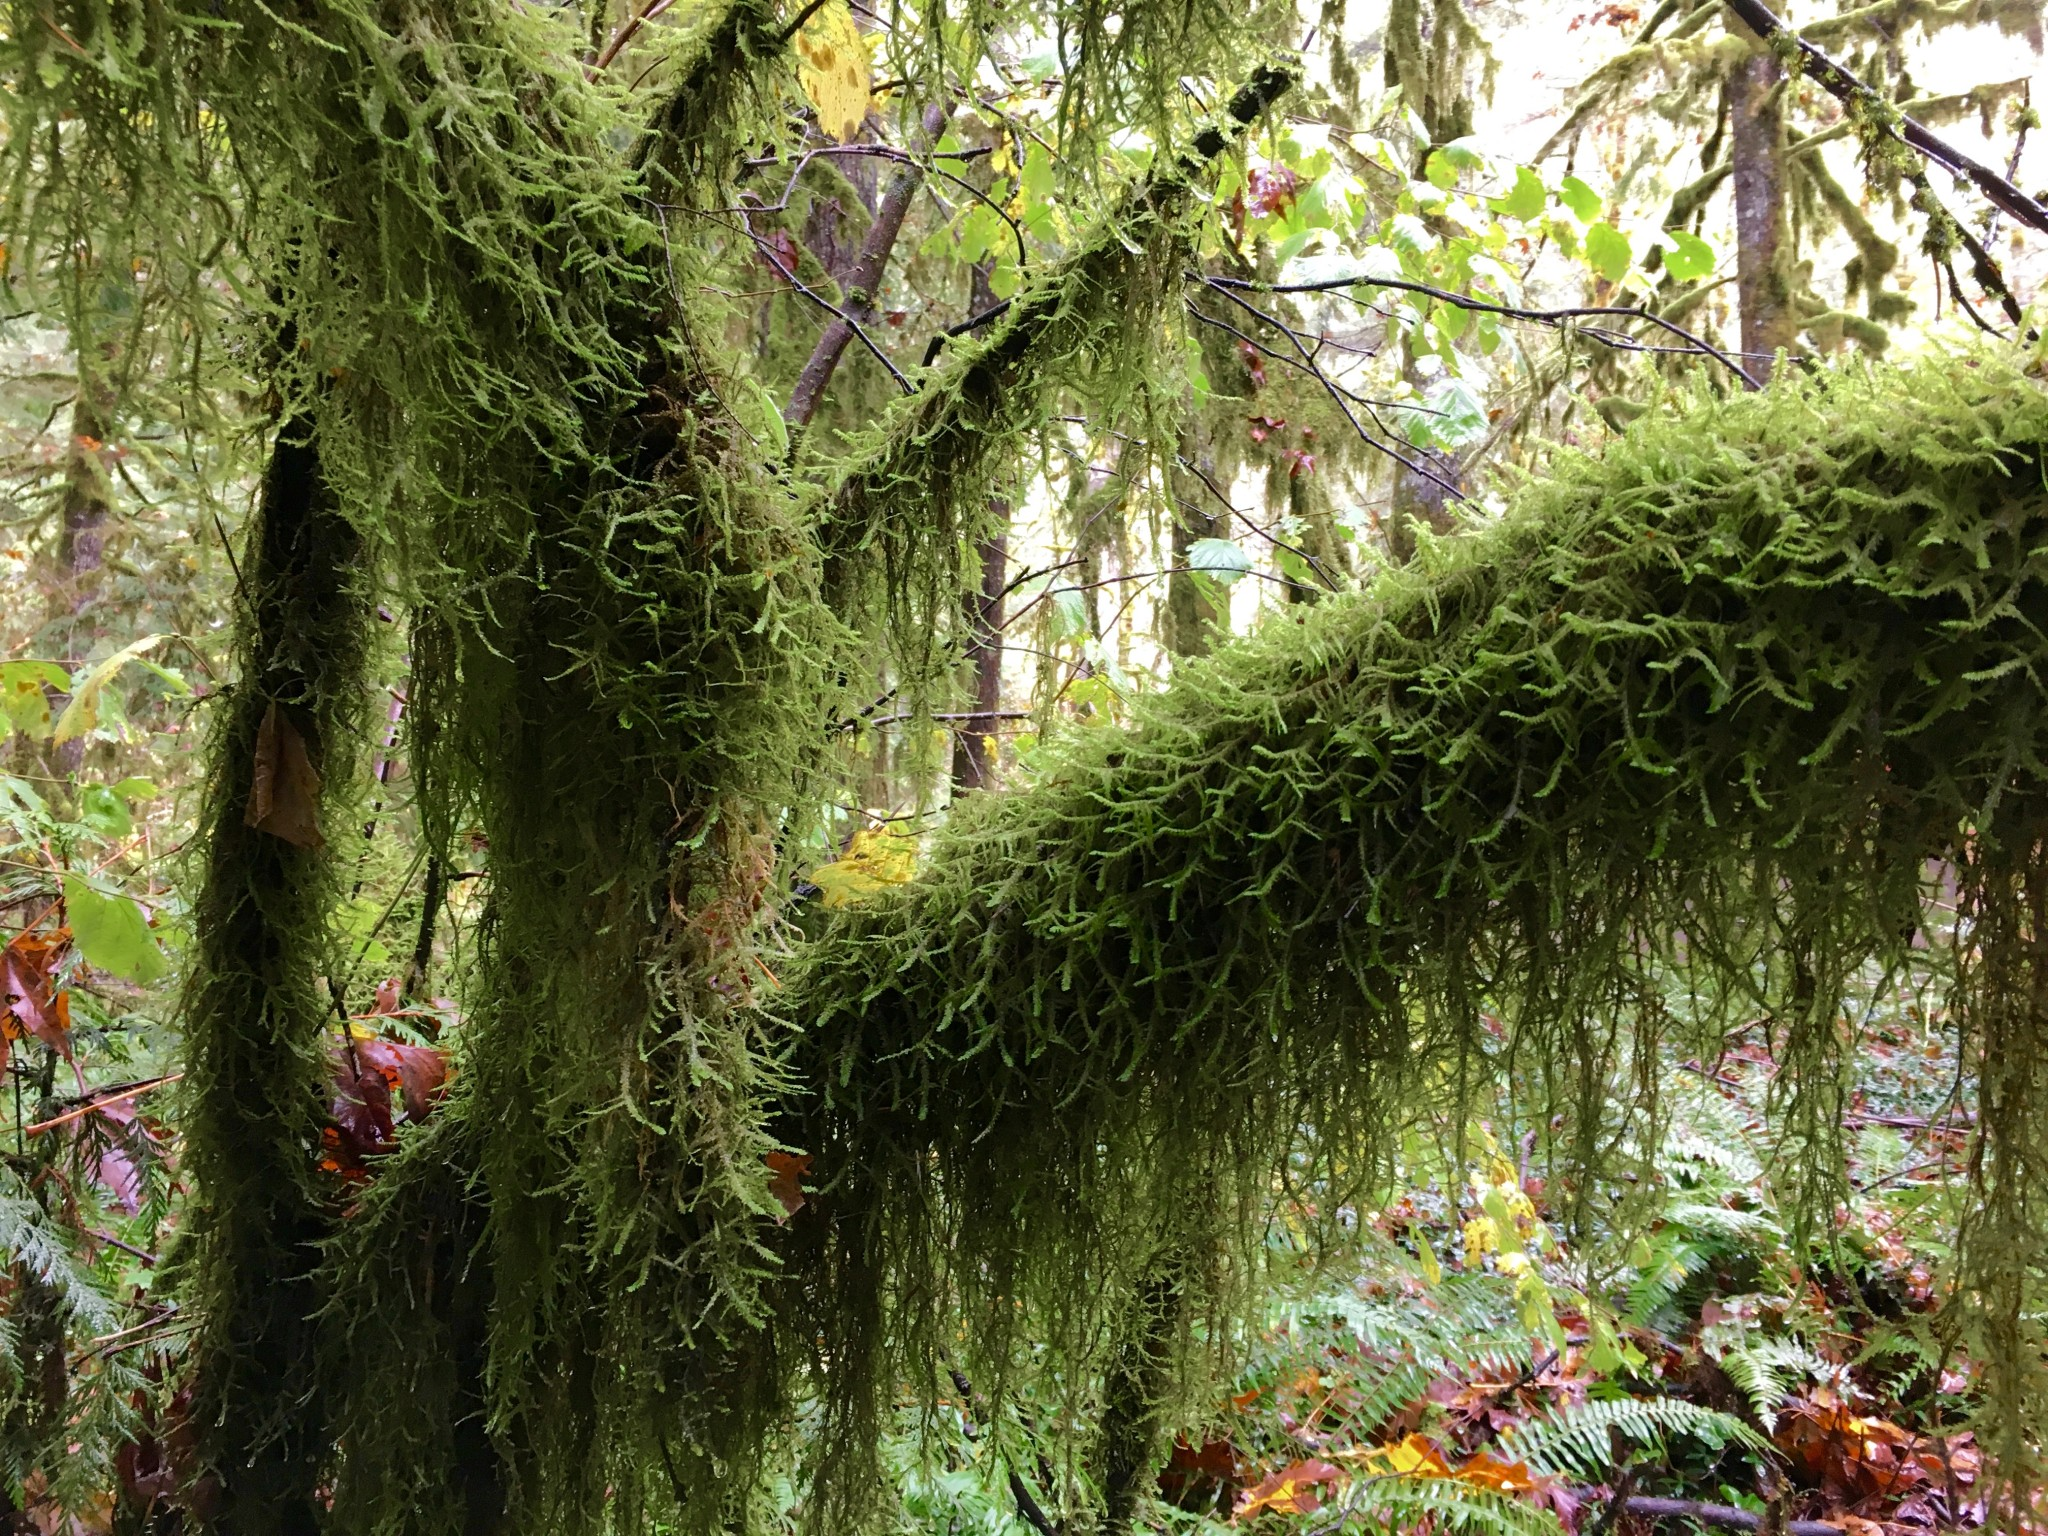 Moss in the woods.